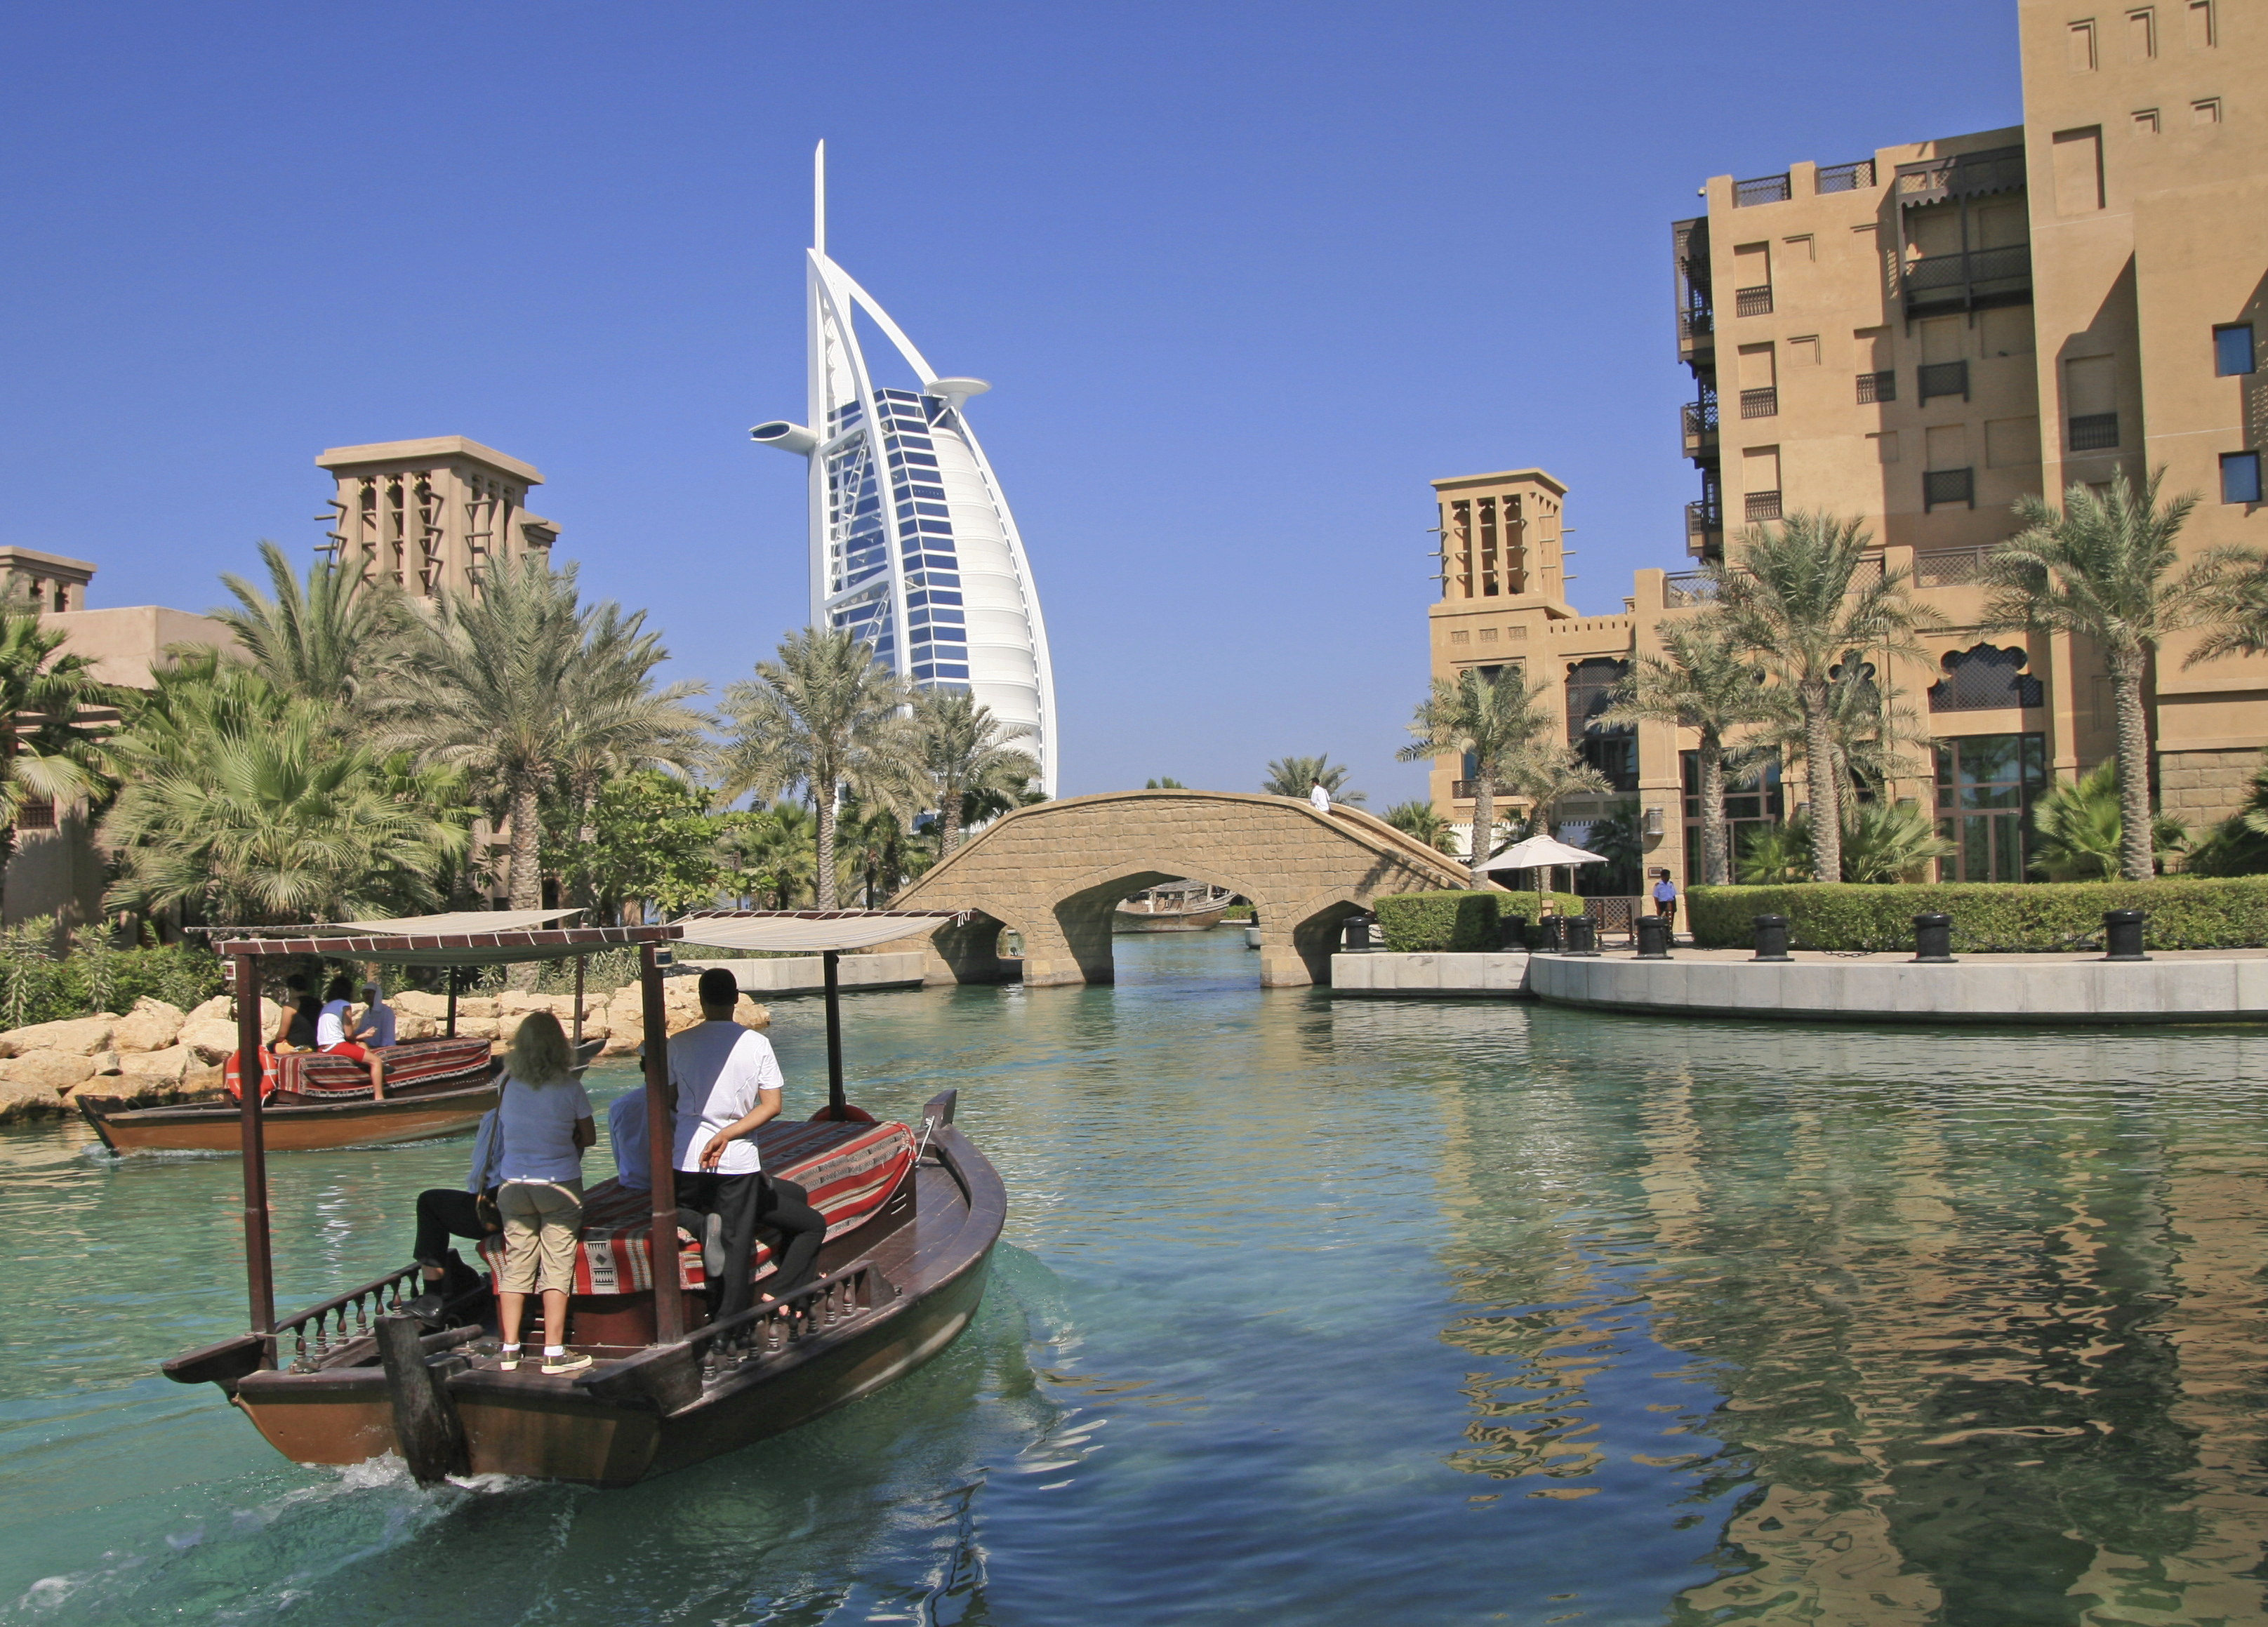 """This image: A view of the waterways at the Madinat Jumeirah in Dubai, with the Burj Al Arab in the background. Water taxis, or """"abras"""" will transport you to your hotel room and restaurants along the water"""